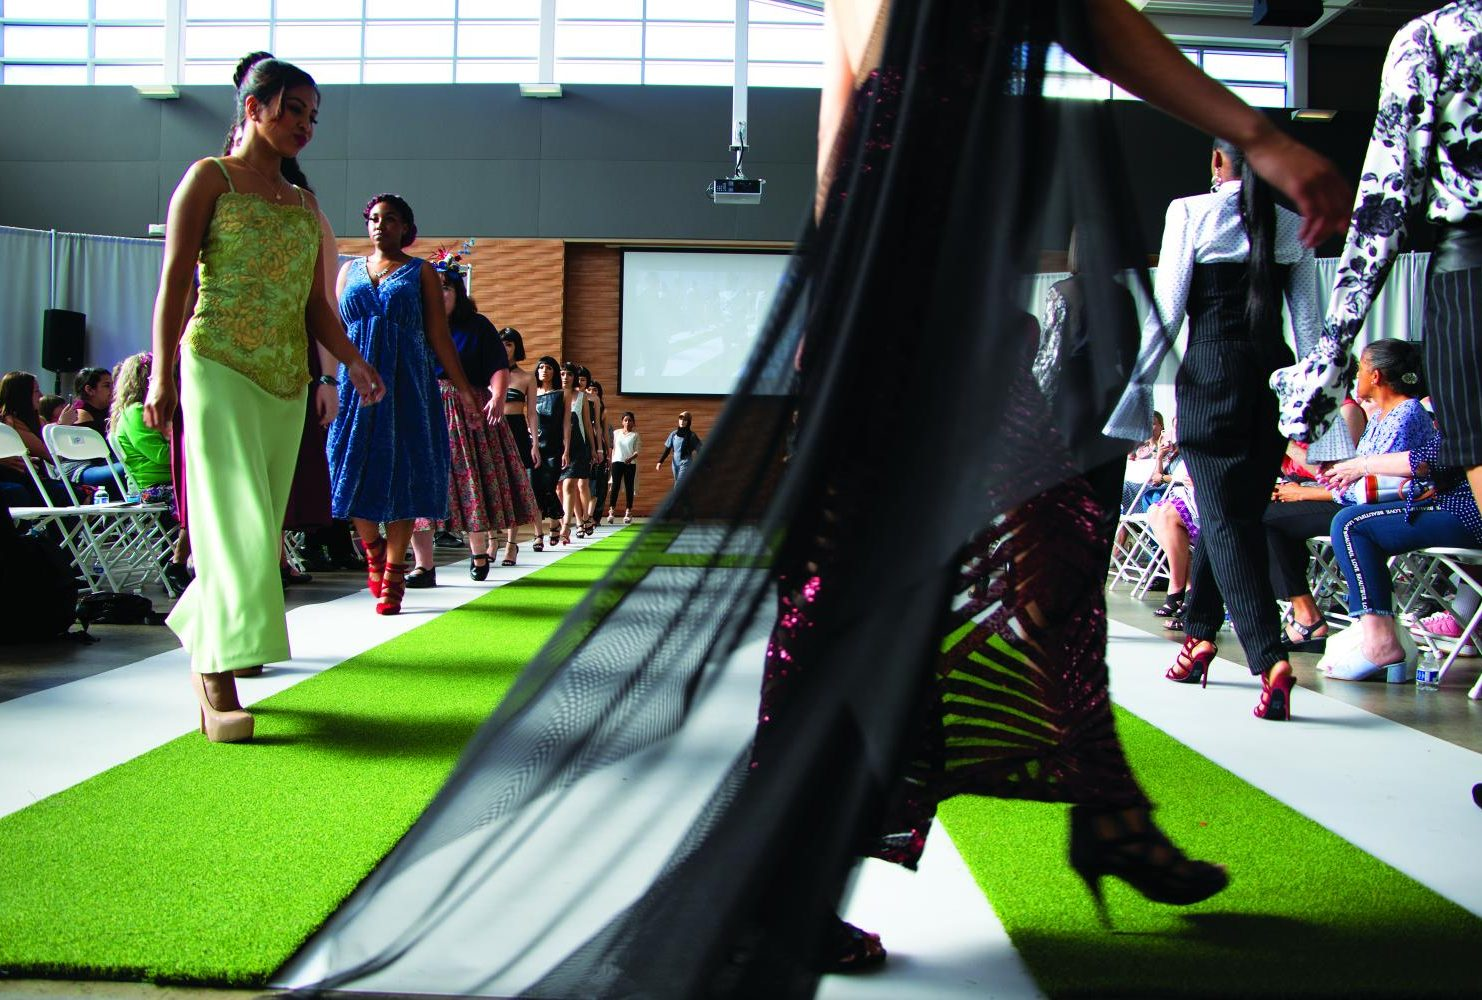 """Models walk the runway in the Student Center during the finale of the 18th annual fashion show """"Homogany"""" put on by the American River College fashion department on May 4th, 2019. (Photo by Ashley Hayes-Stone)"""